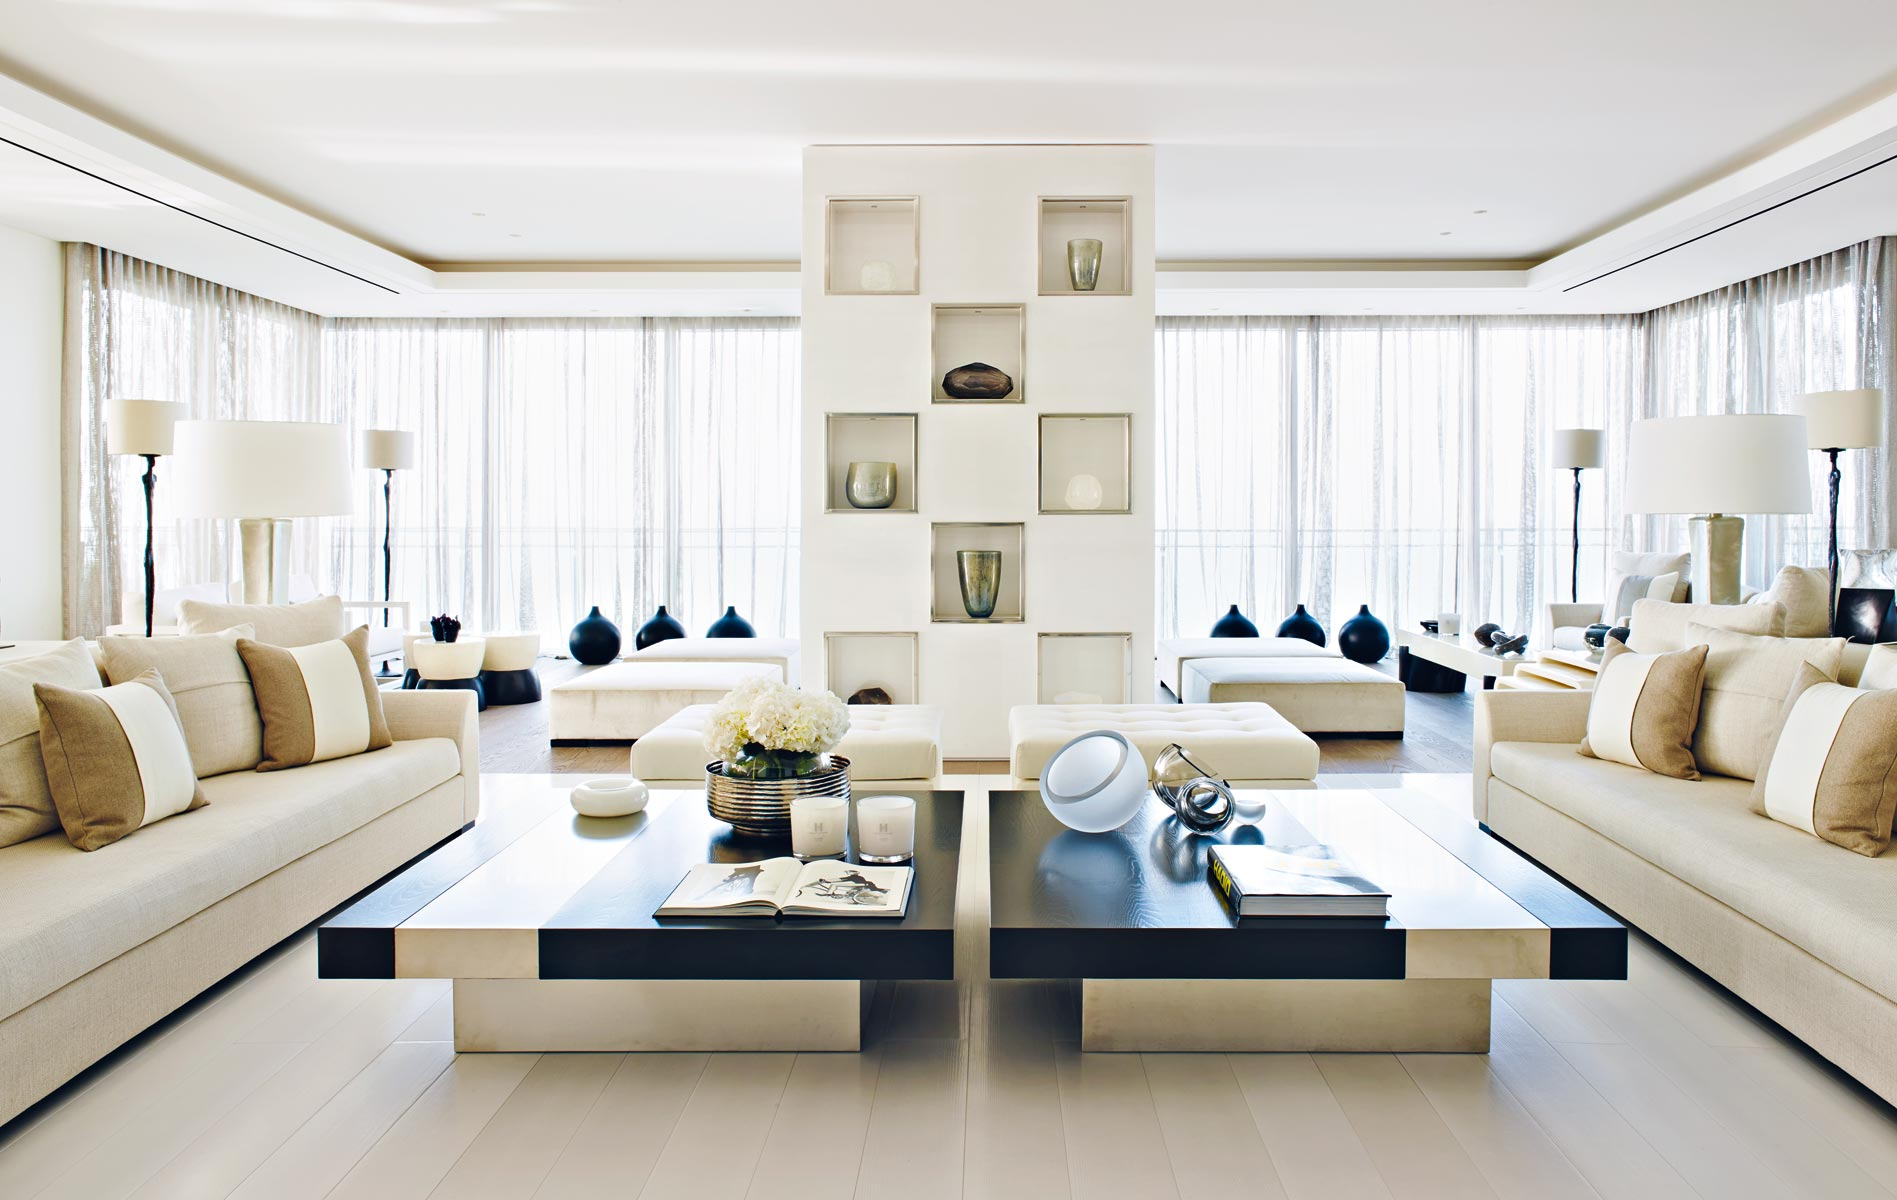 Top 10 kelly hoppen design ideas - Home decor with interior design ...